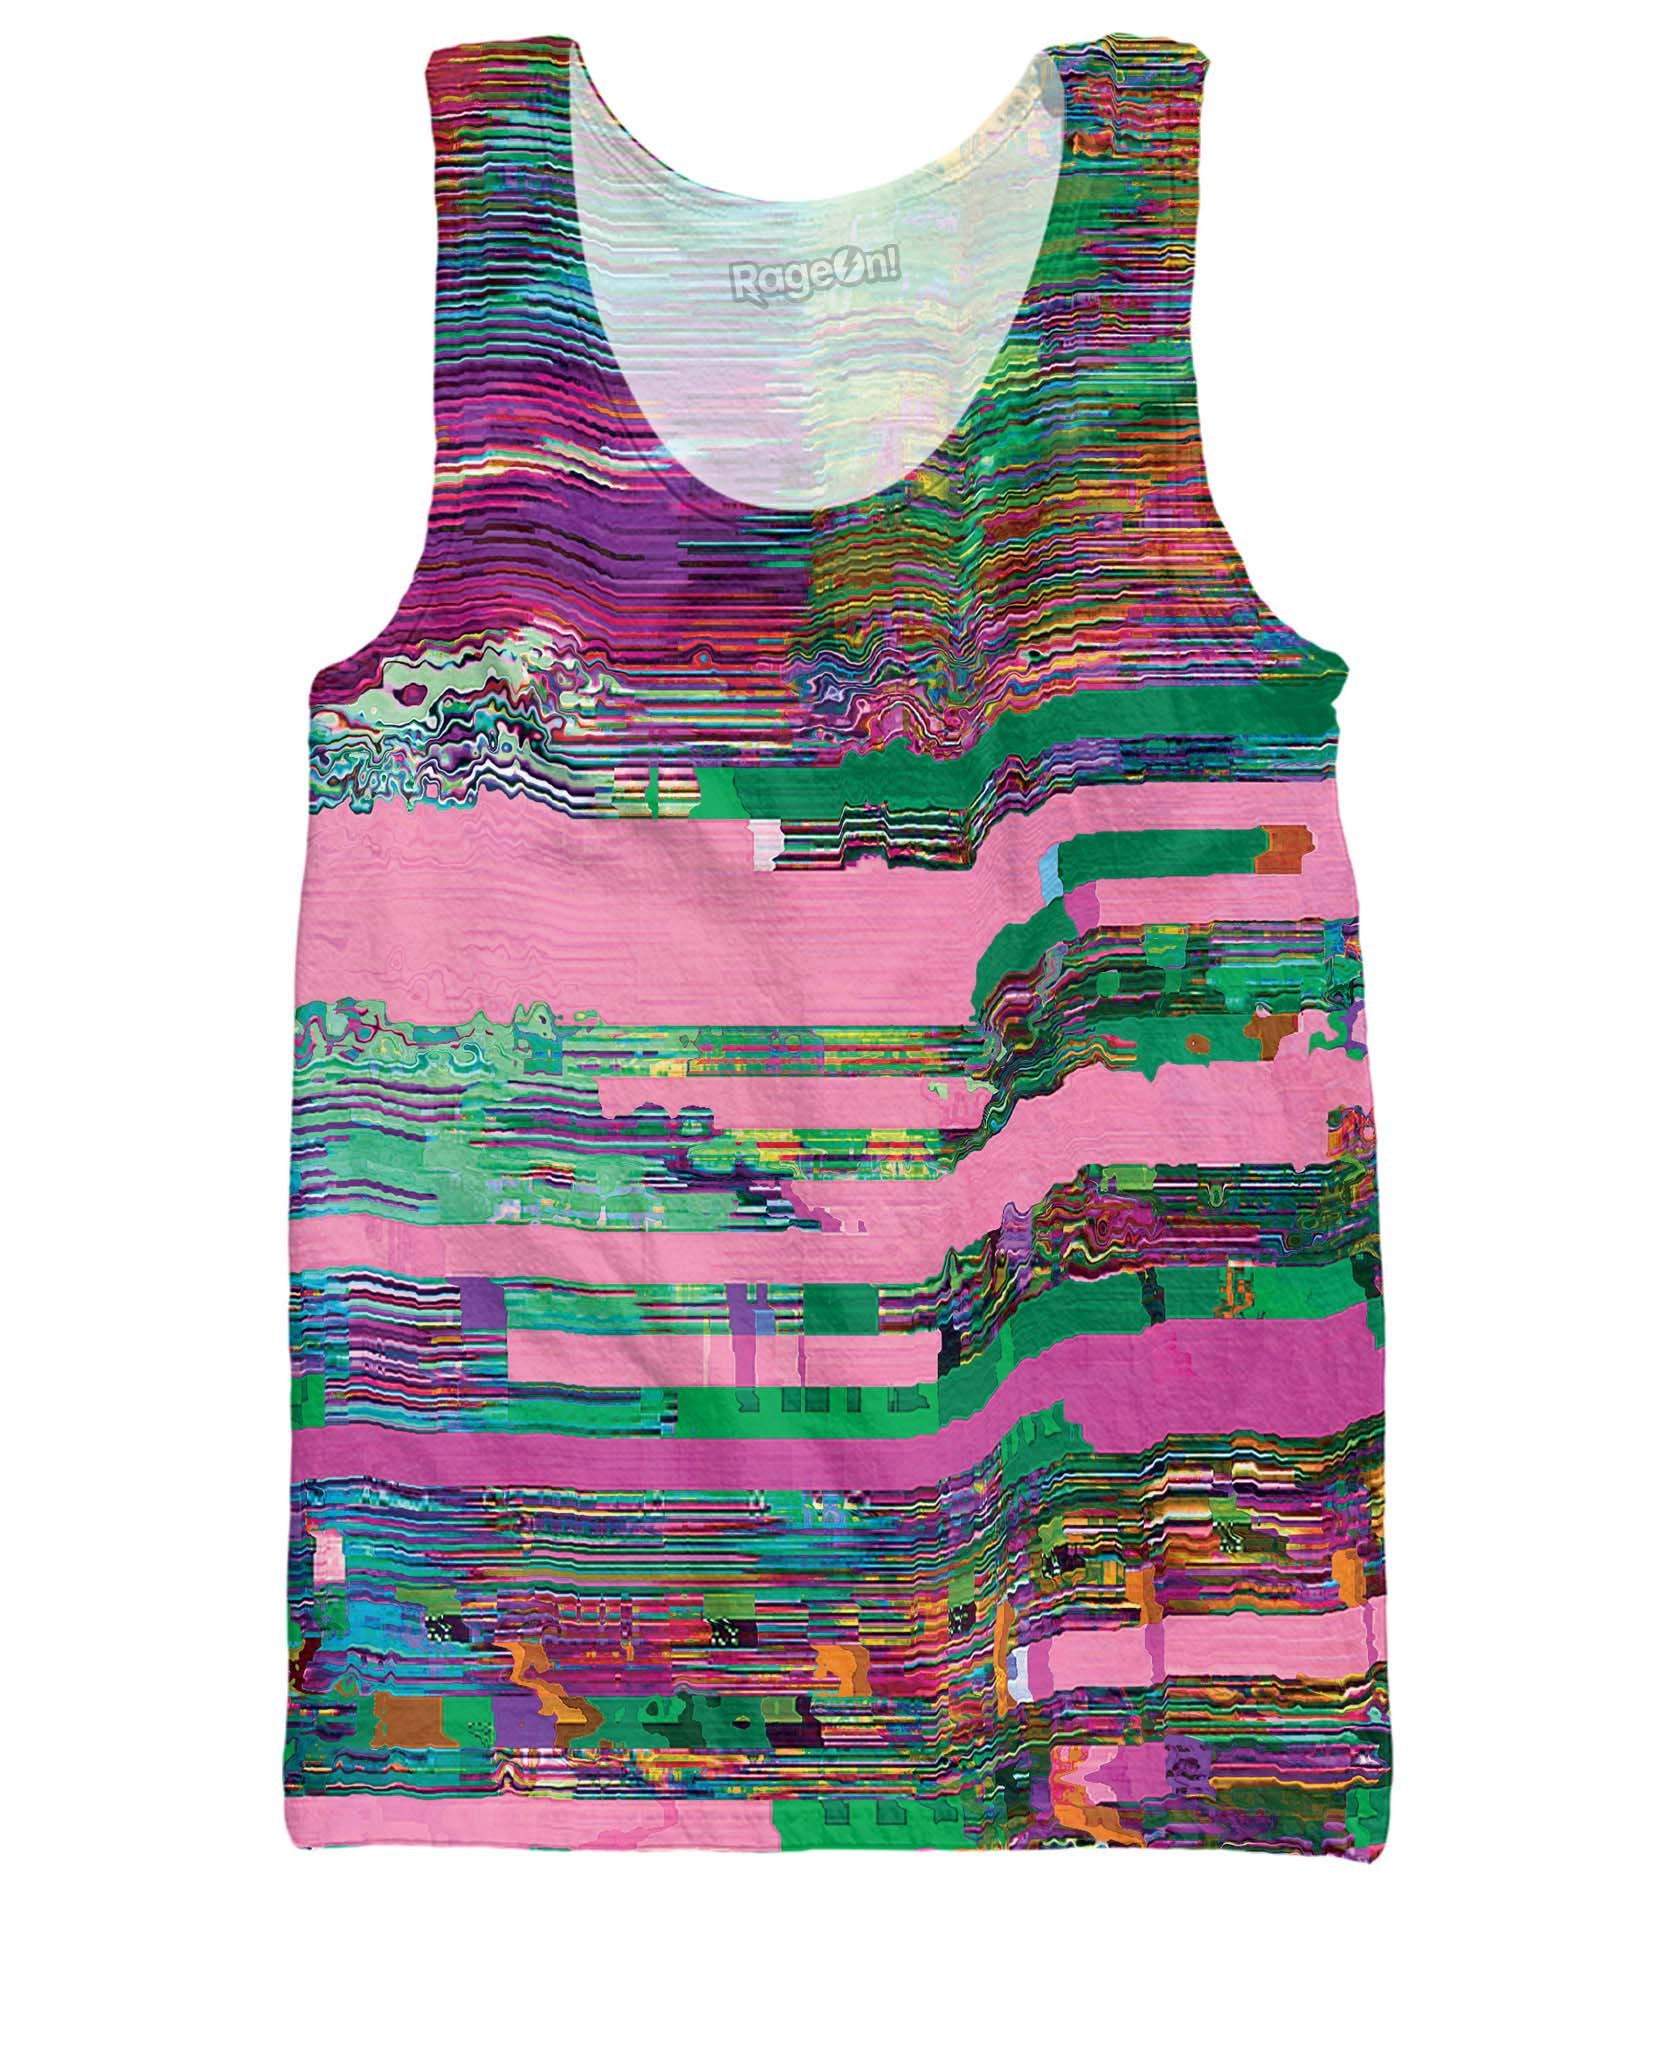 Glitch Tank Top men women graphic t